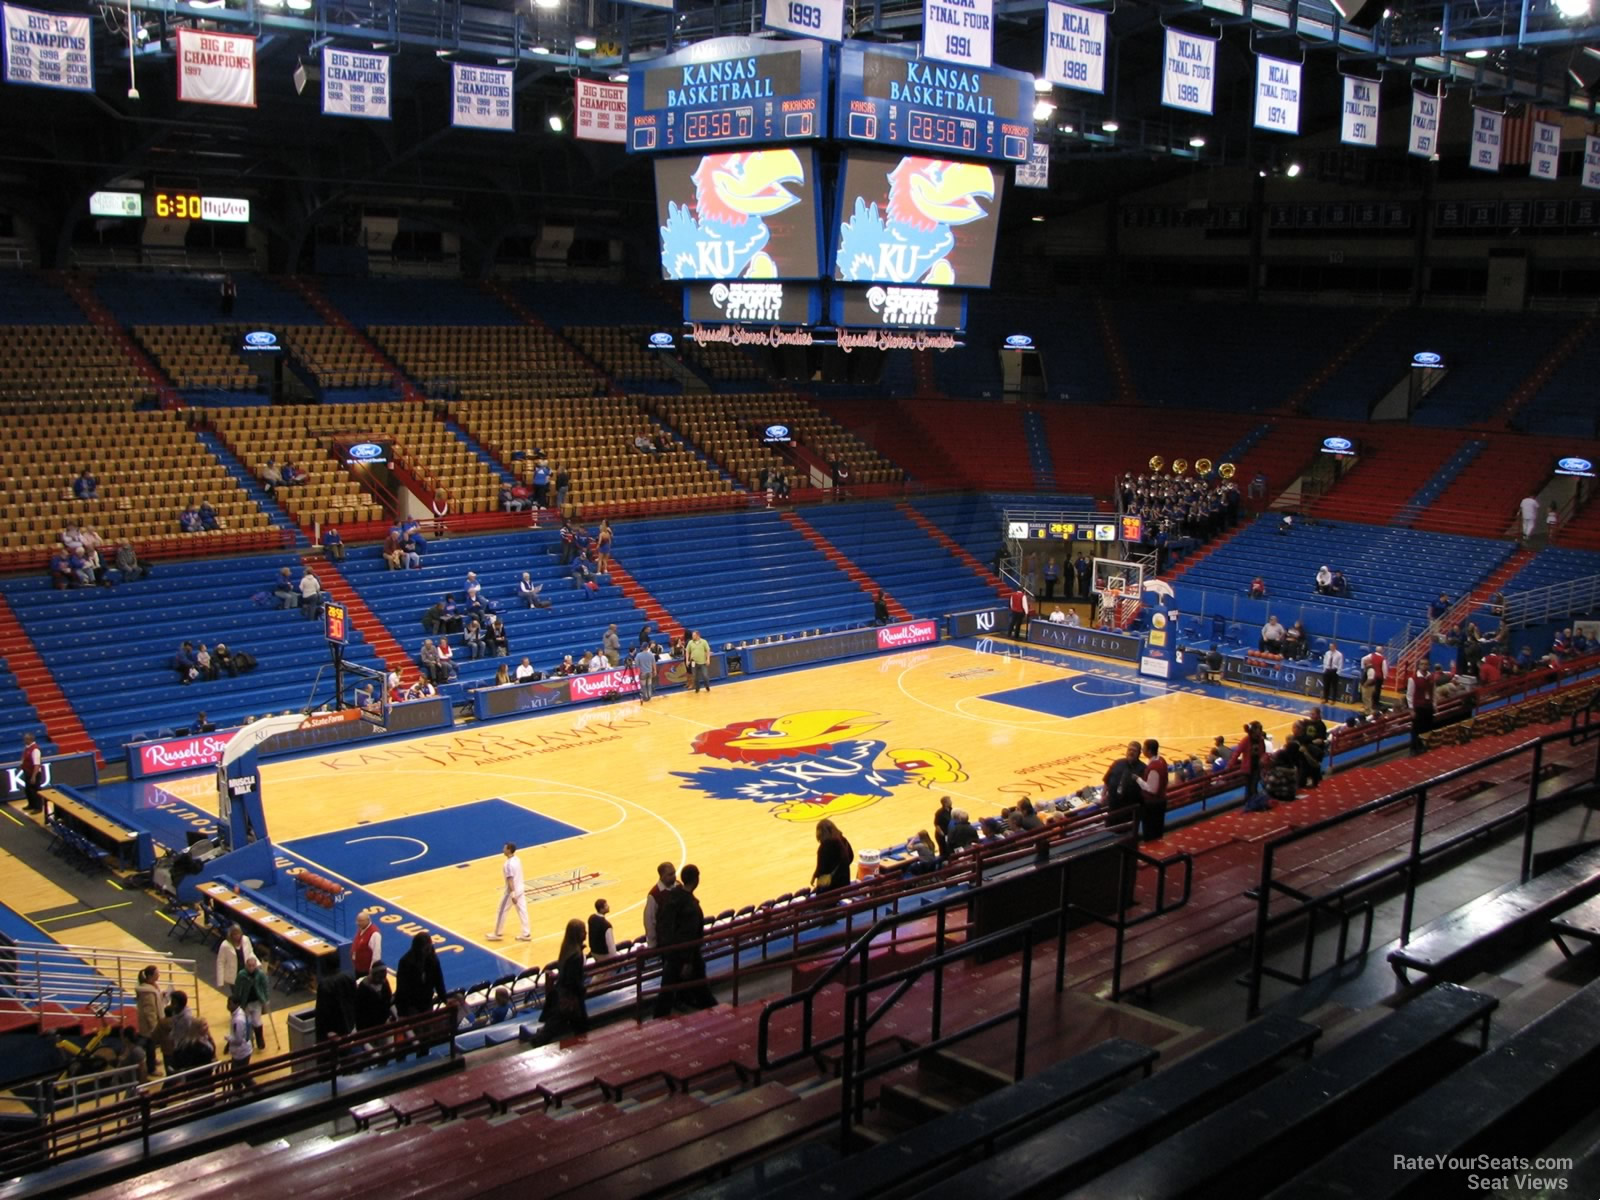 Seat View for Allen Fieldhouse Section 20A, Row 18